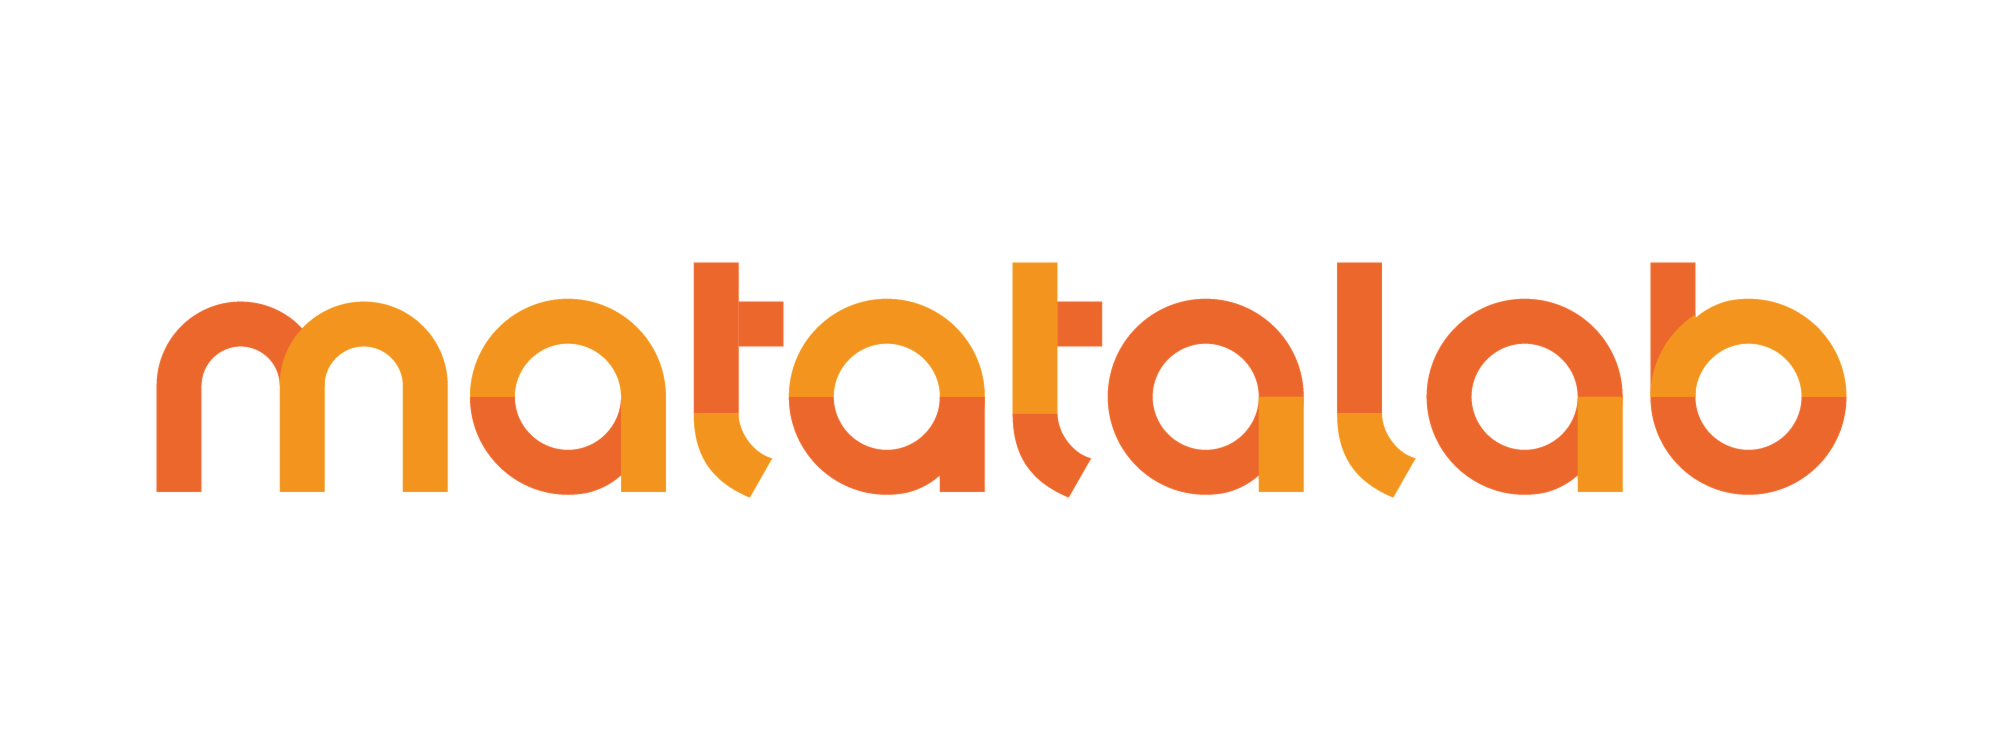 MATATALAB CO.,LTD